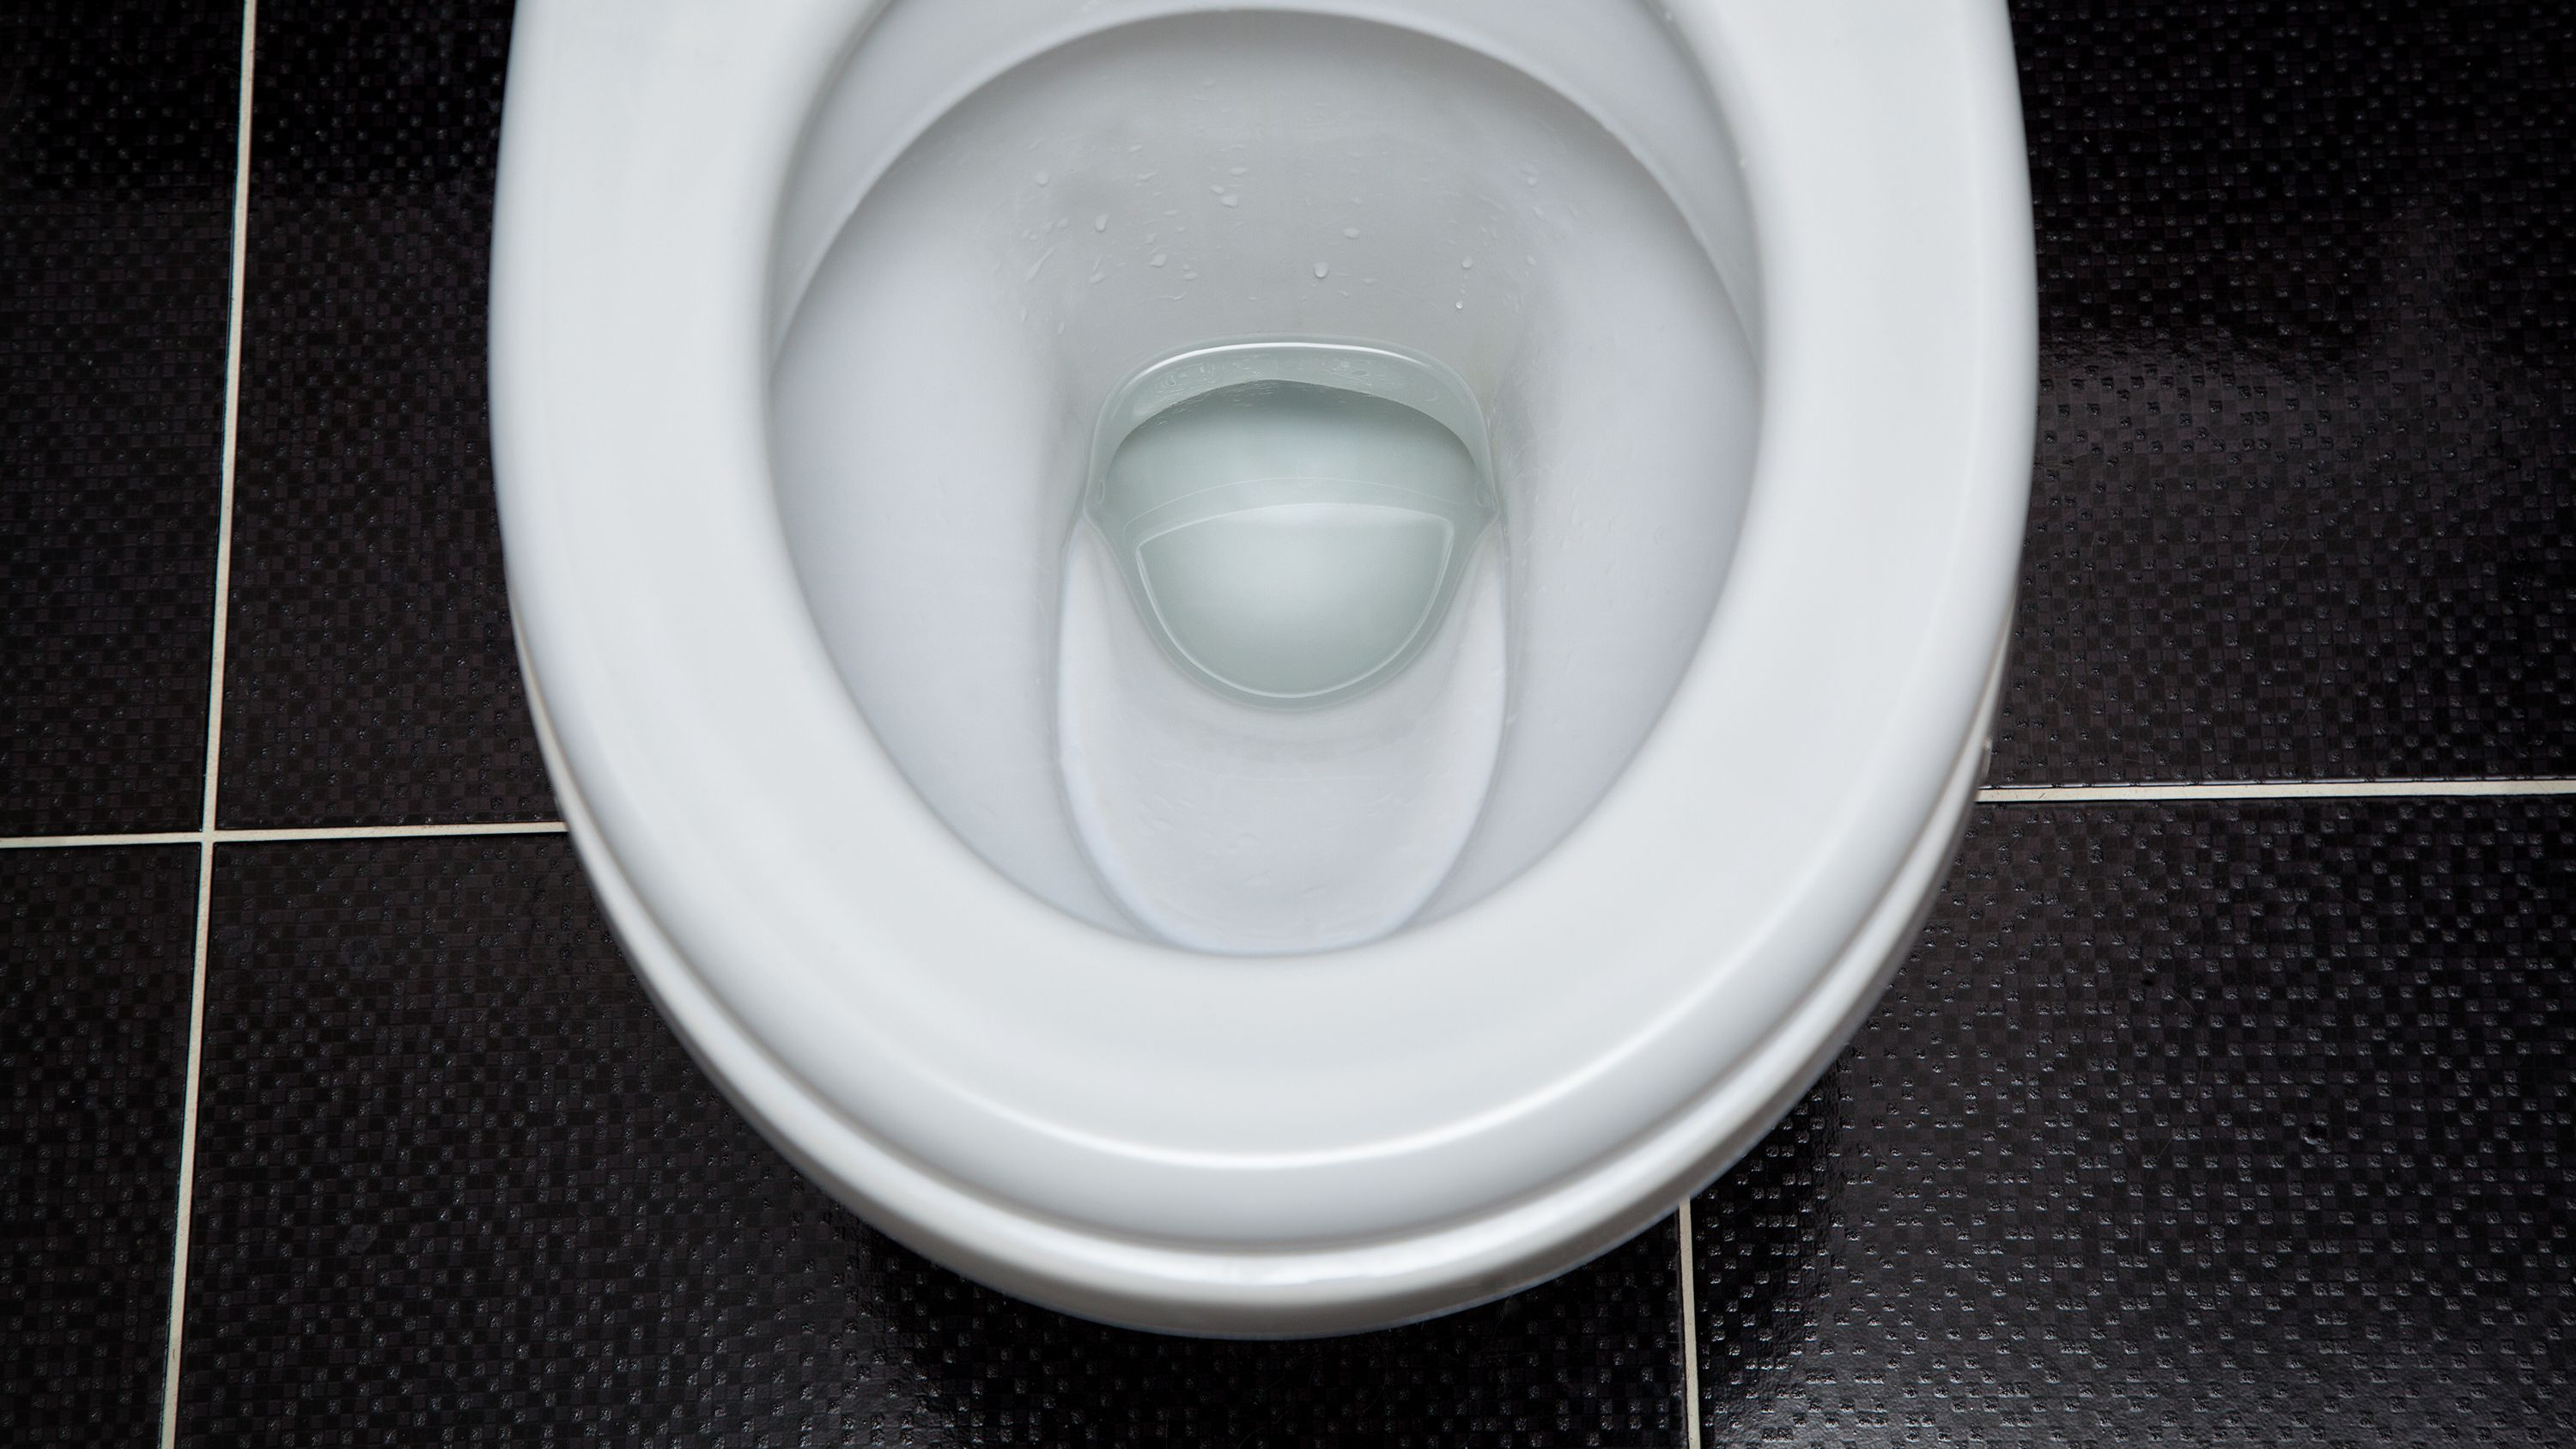 Wall-hung or close-coupled toilet: which is right for you?